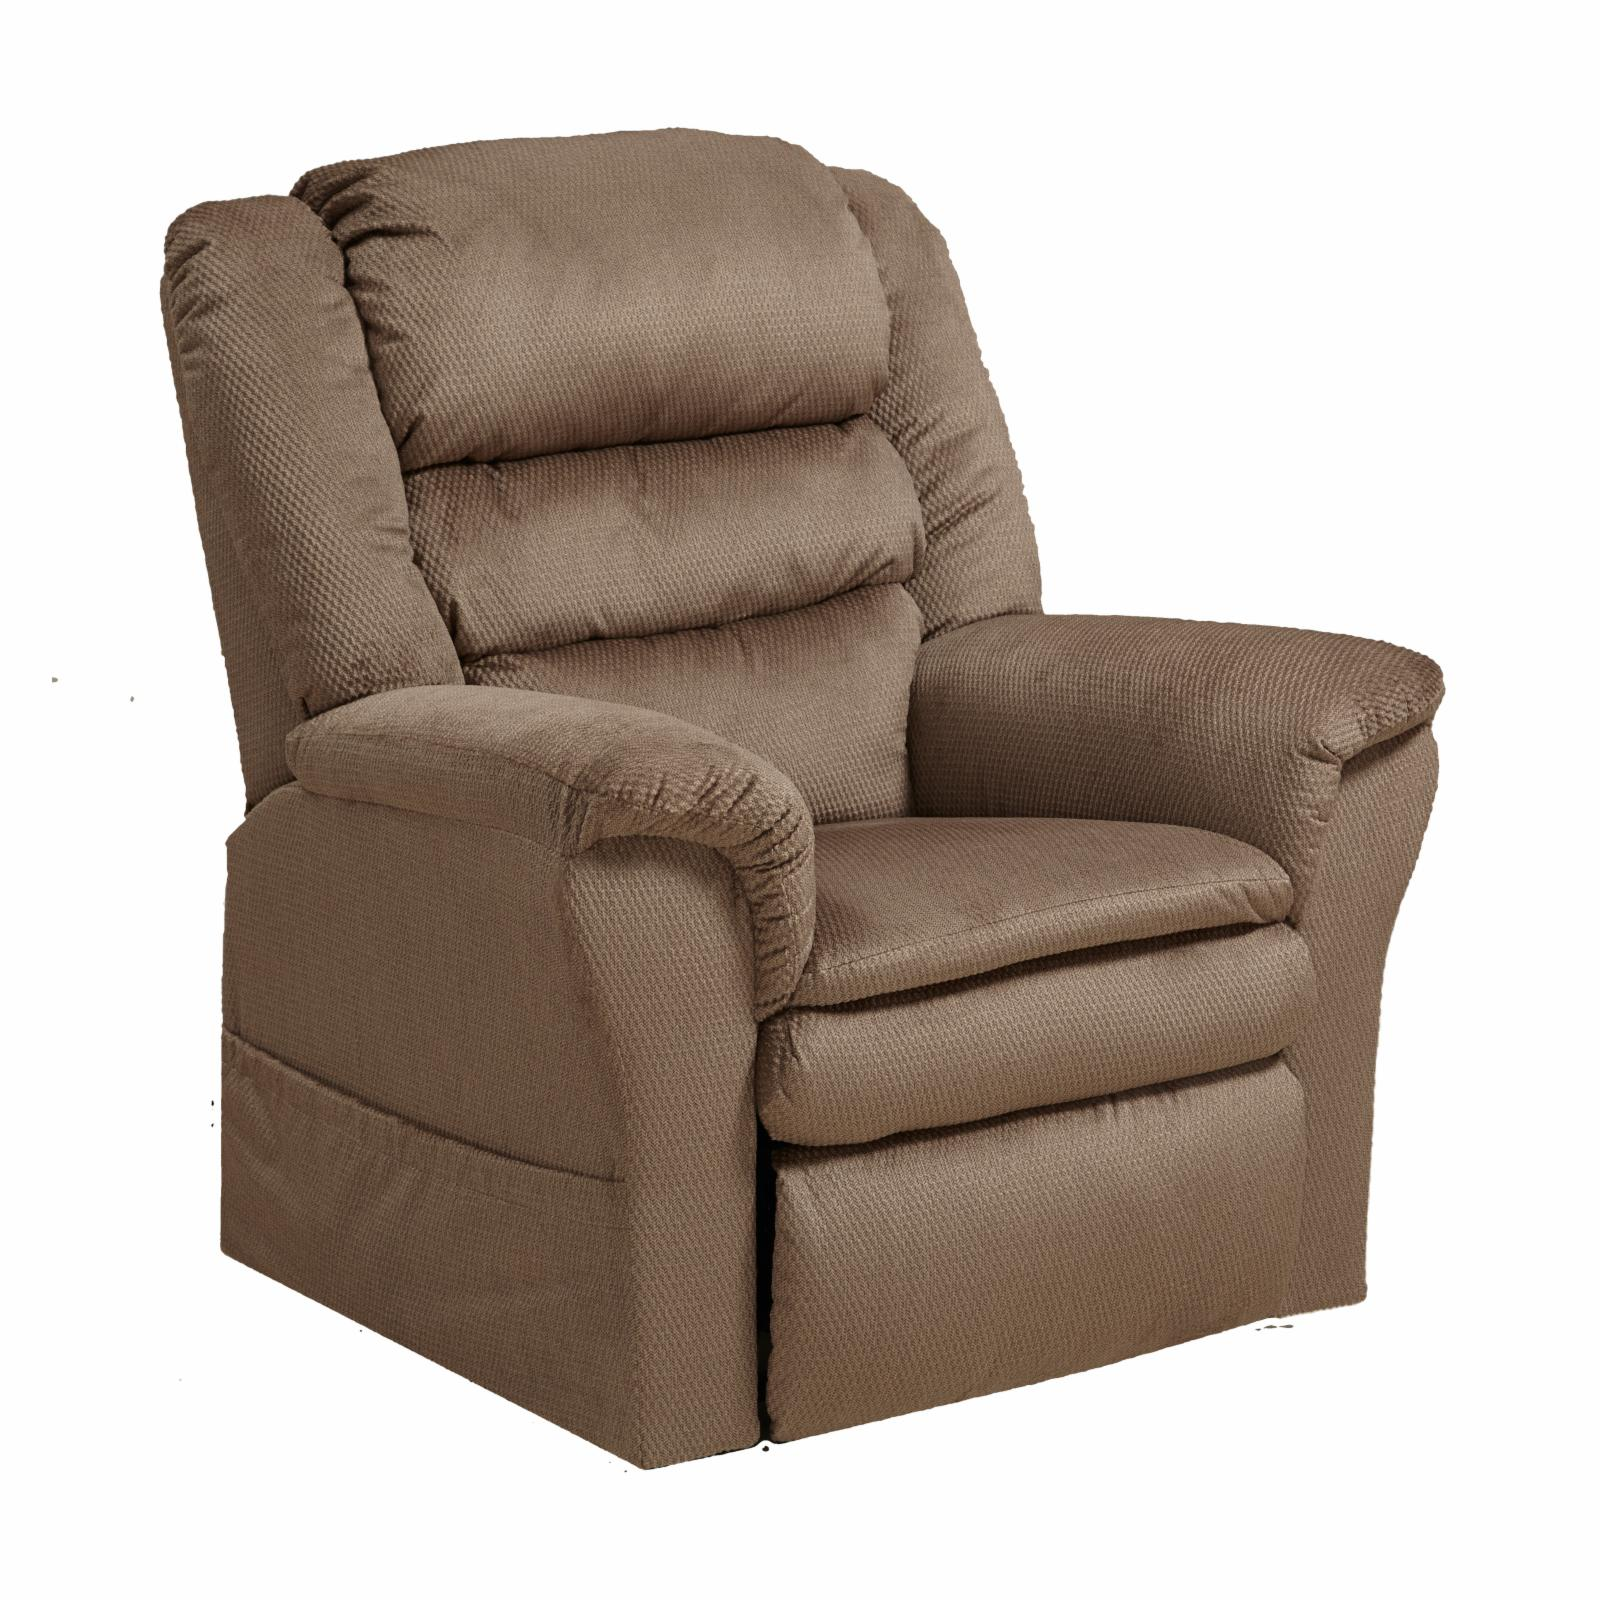 Catnapper Preston Power Lift Recliner with Pillowtop Seat...